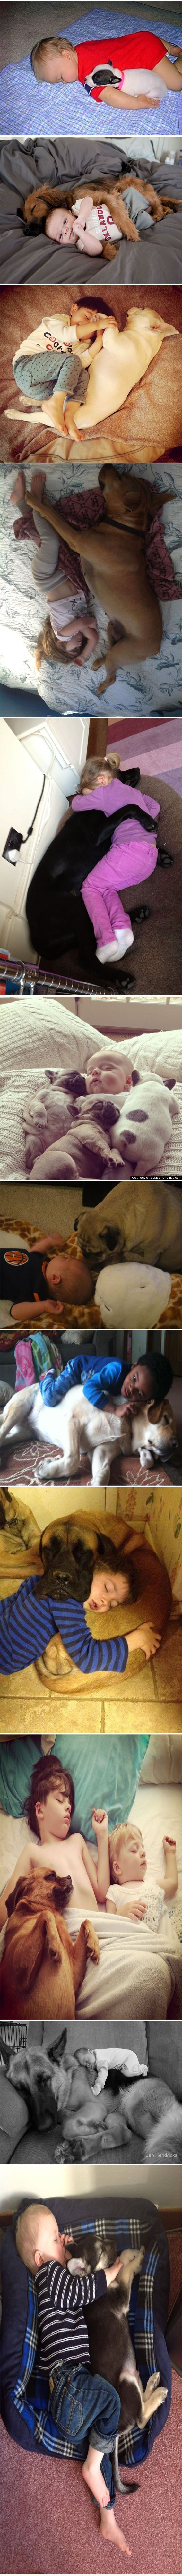 Both babies. I'm melting!: Dogs Kids, Baby Sleeping, Icy Heart, Sweet, Dogs And Kids, Friend, Animal